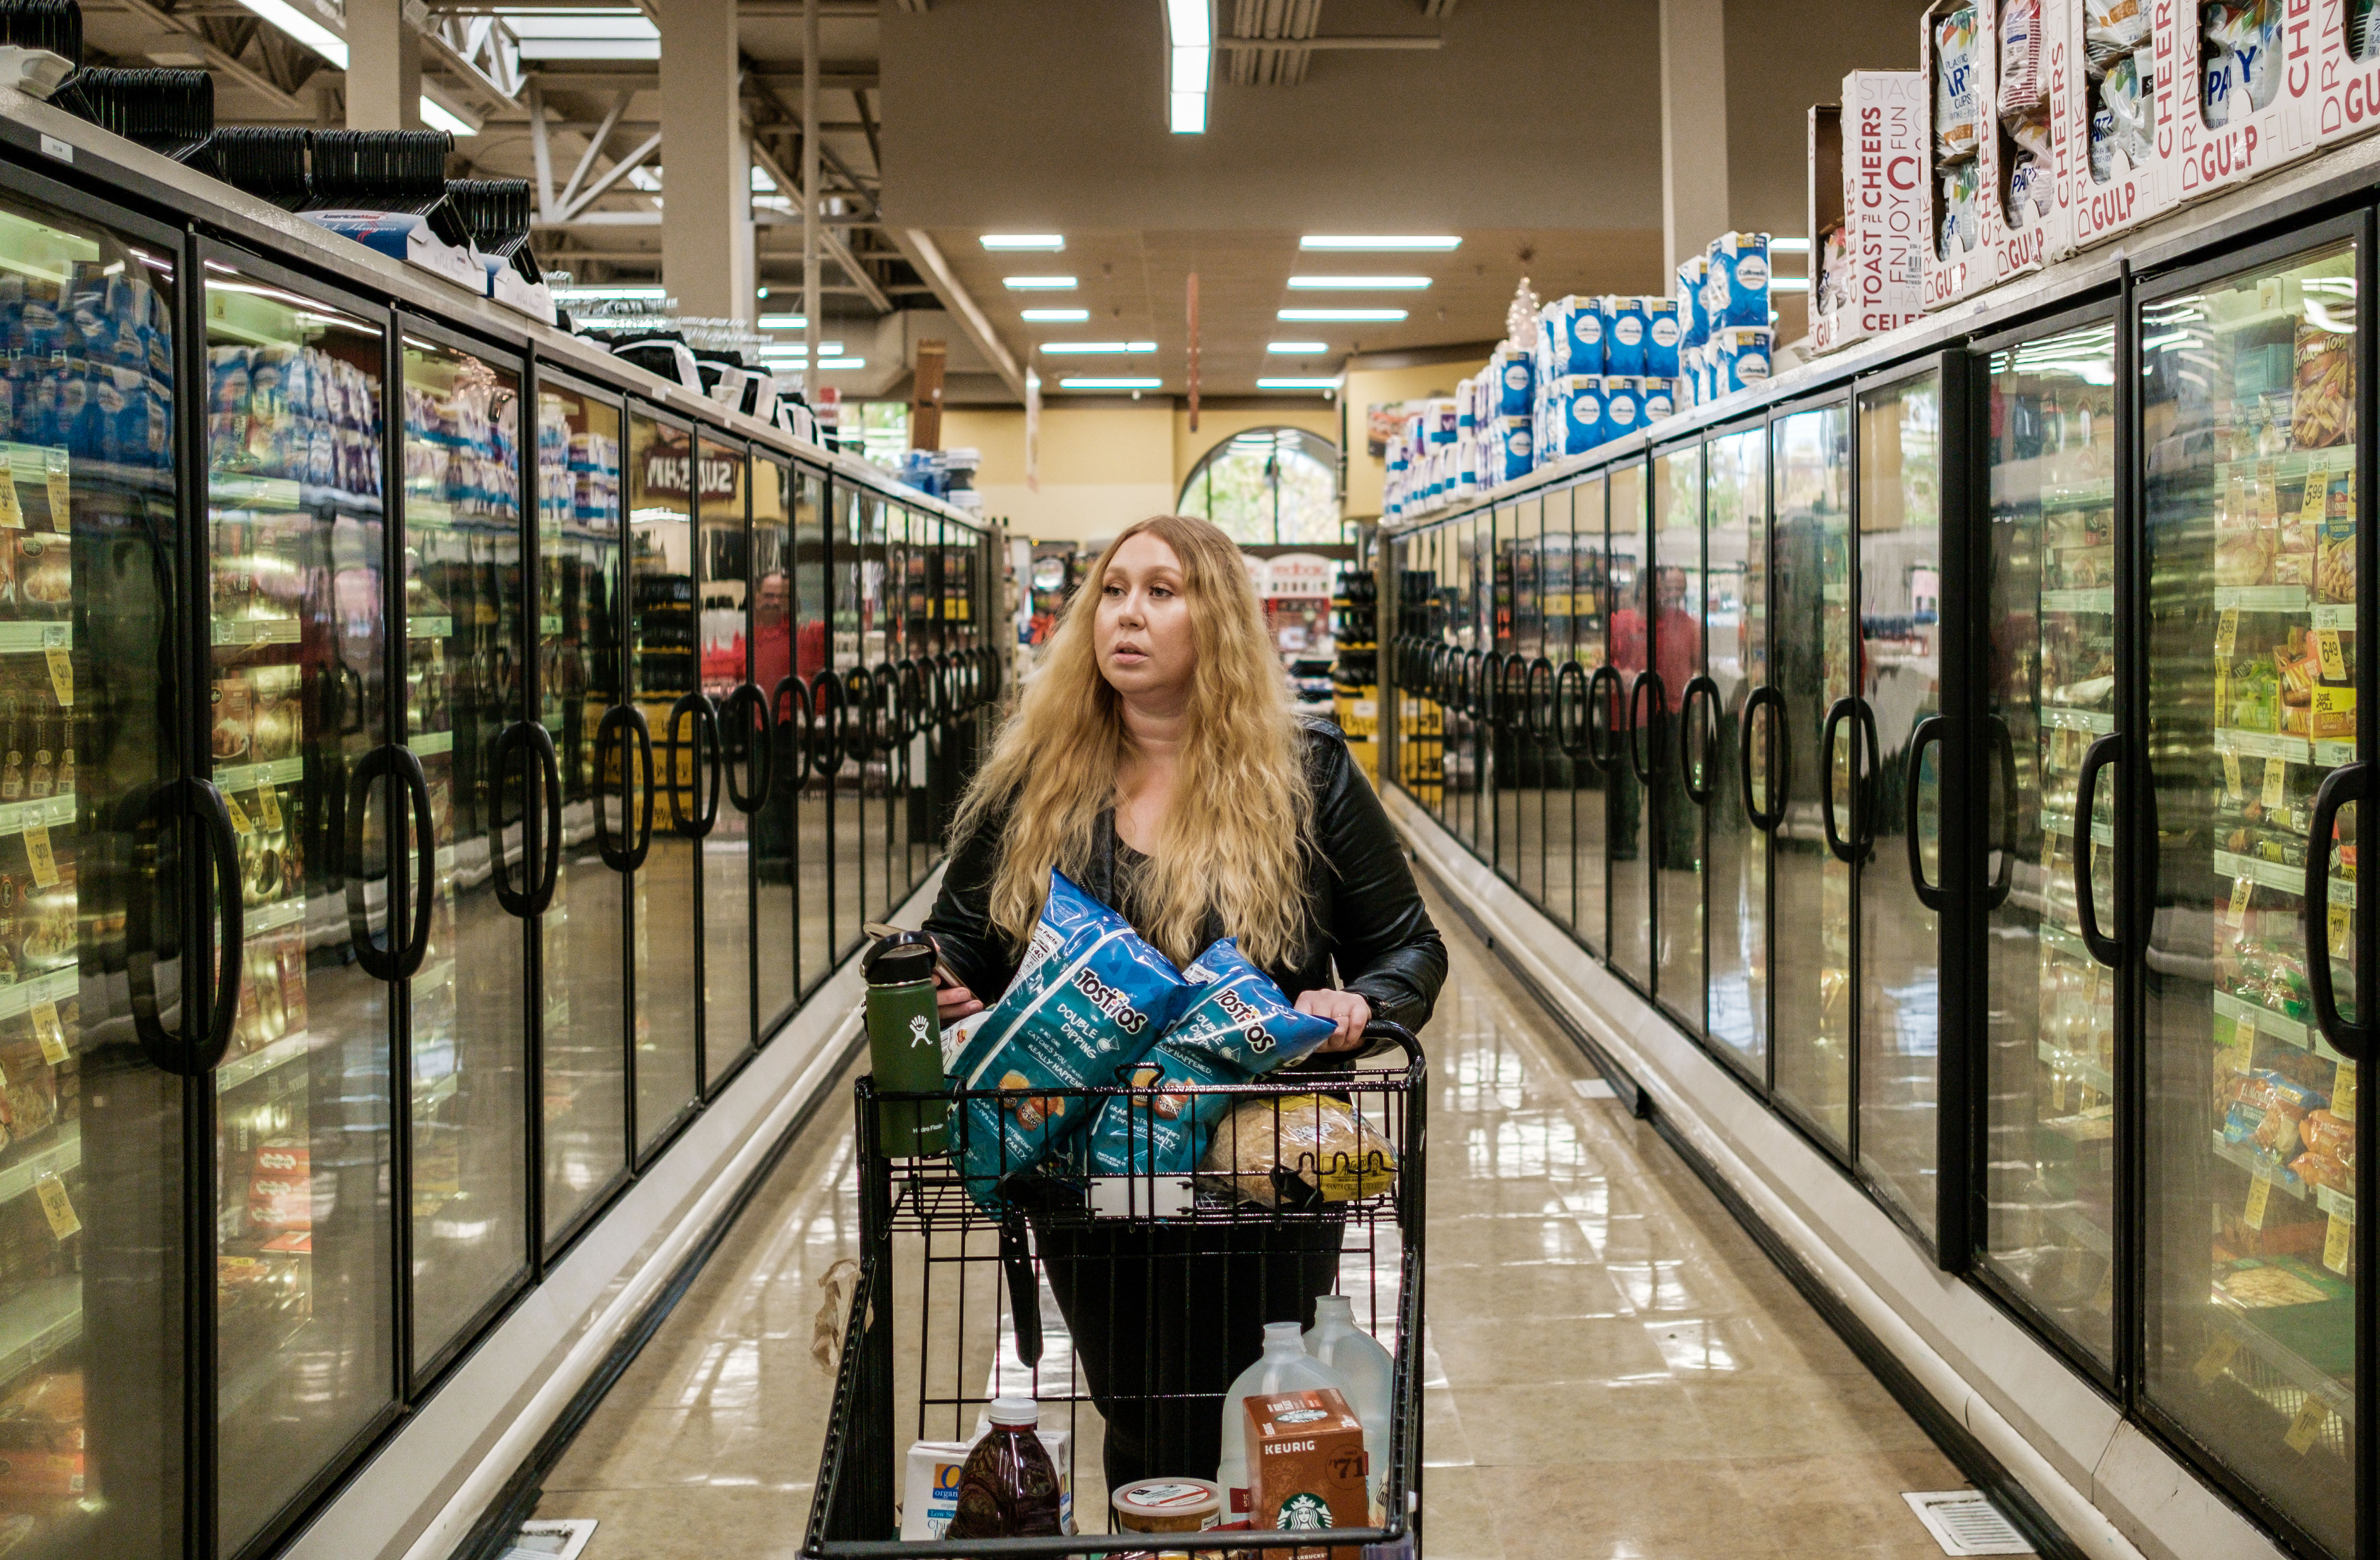 Instacart shopper Vanessa Bain shops for groceries for a customer at the Safeway in Menlo Park, California.